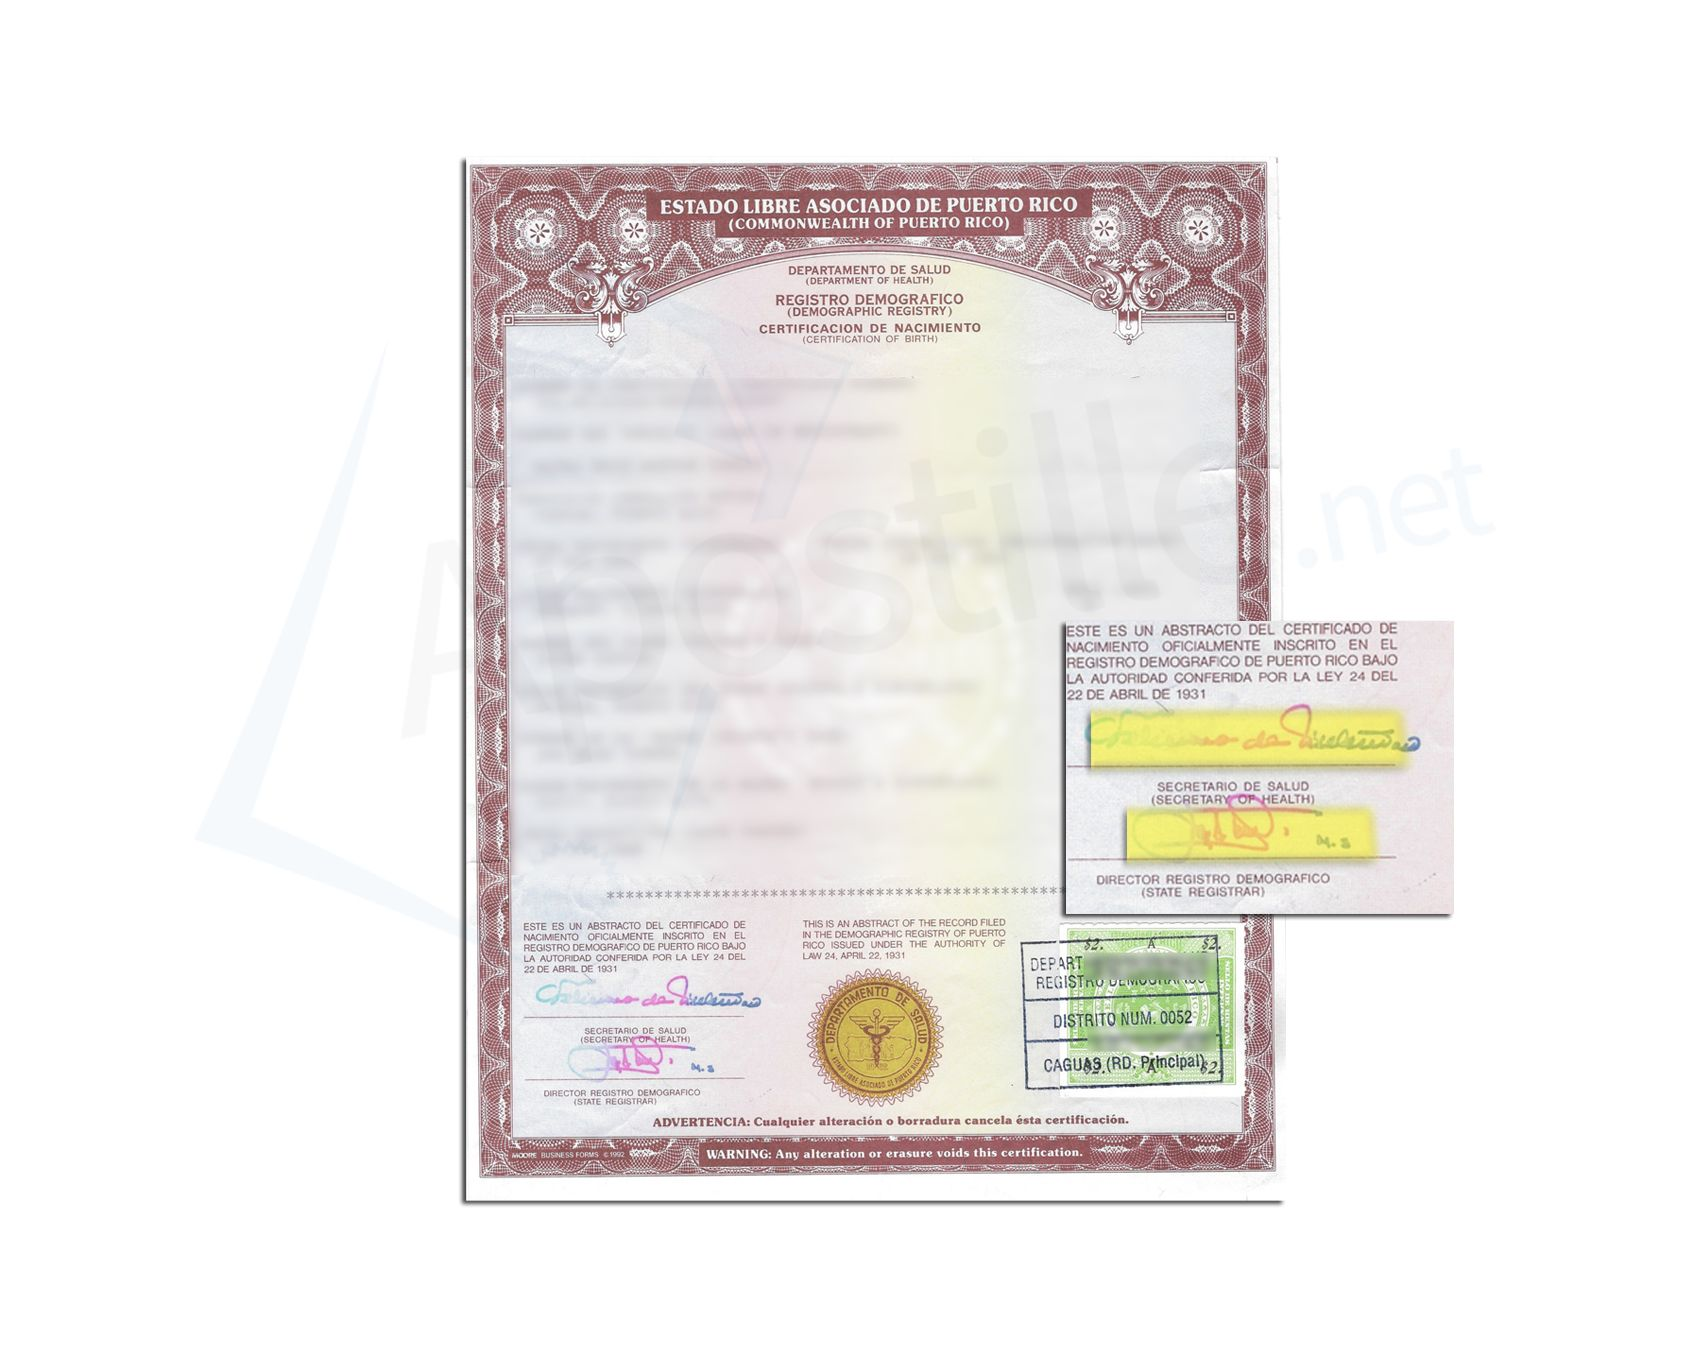 State of nevada birth certificate issued by a state registrar state of puerto rico birth certificate non acceptable for apostille xflitez Image collections